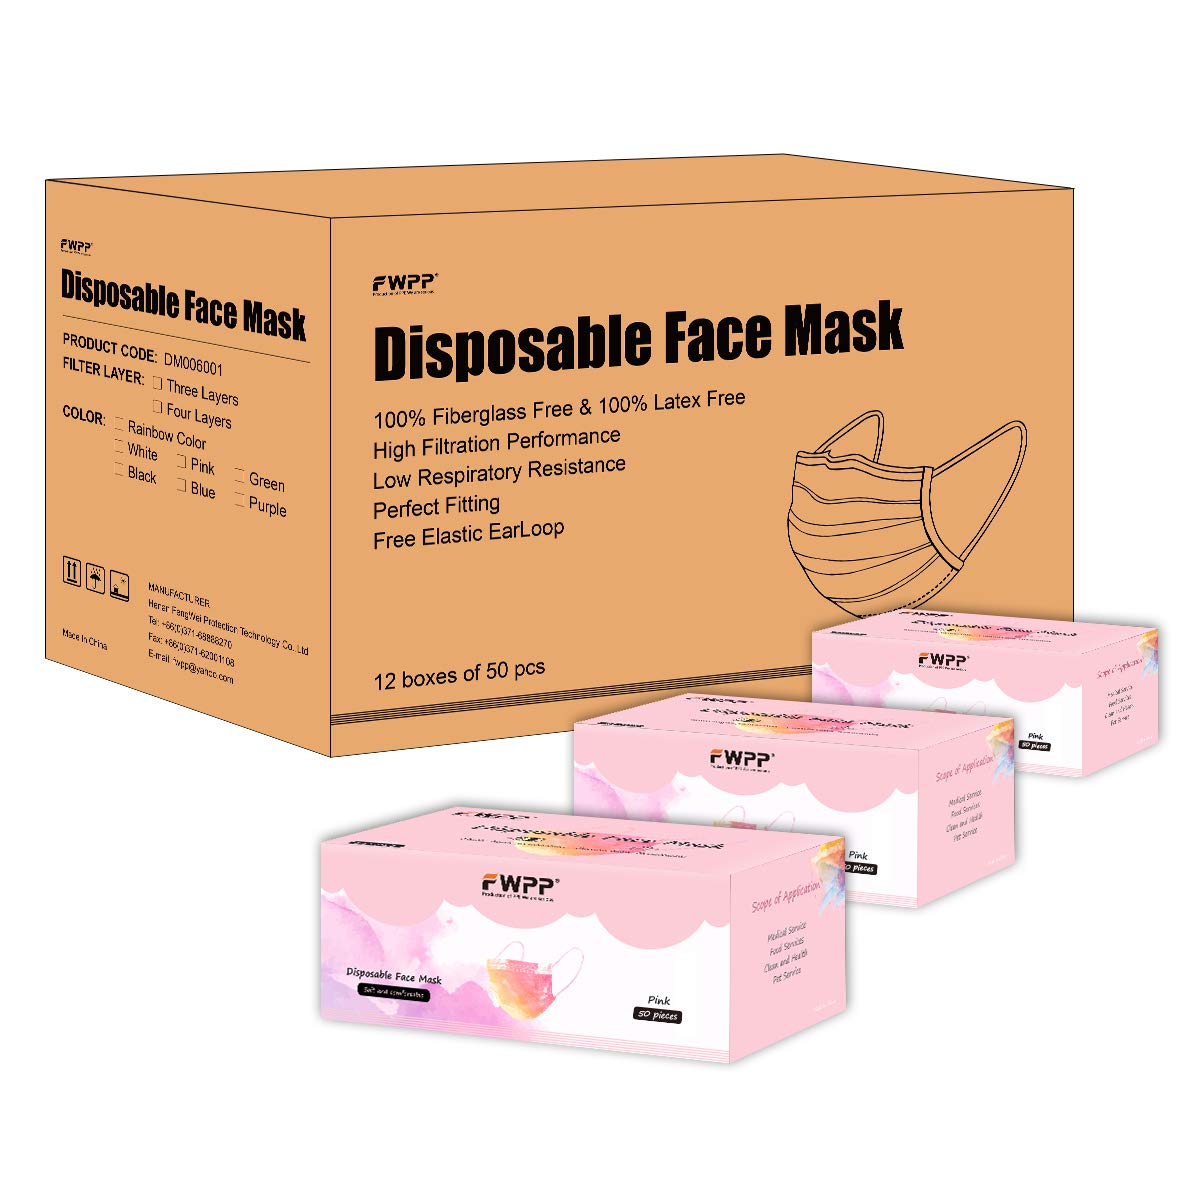 FWPP 600 pcs Breathable Earloop Disposable Face Masks Surgical Medical Economy Plus Romantic Pink by FWPP